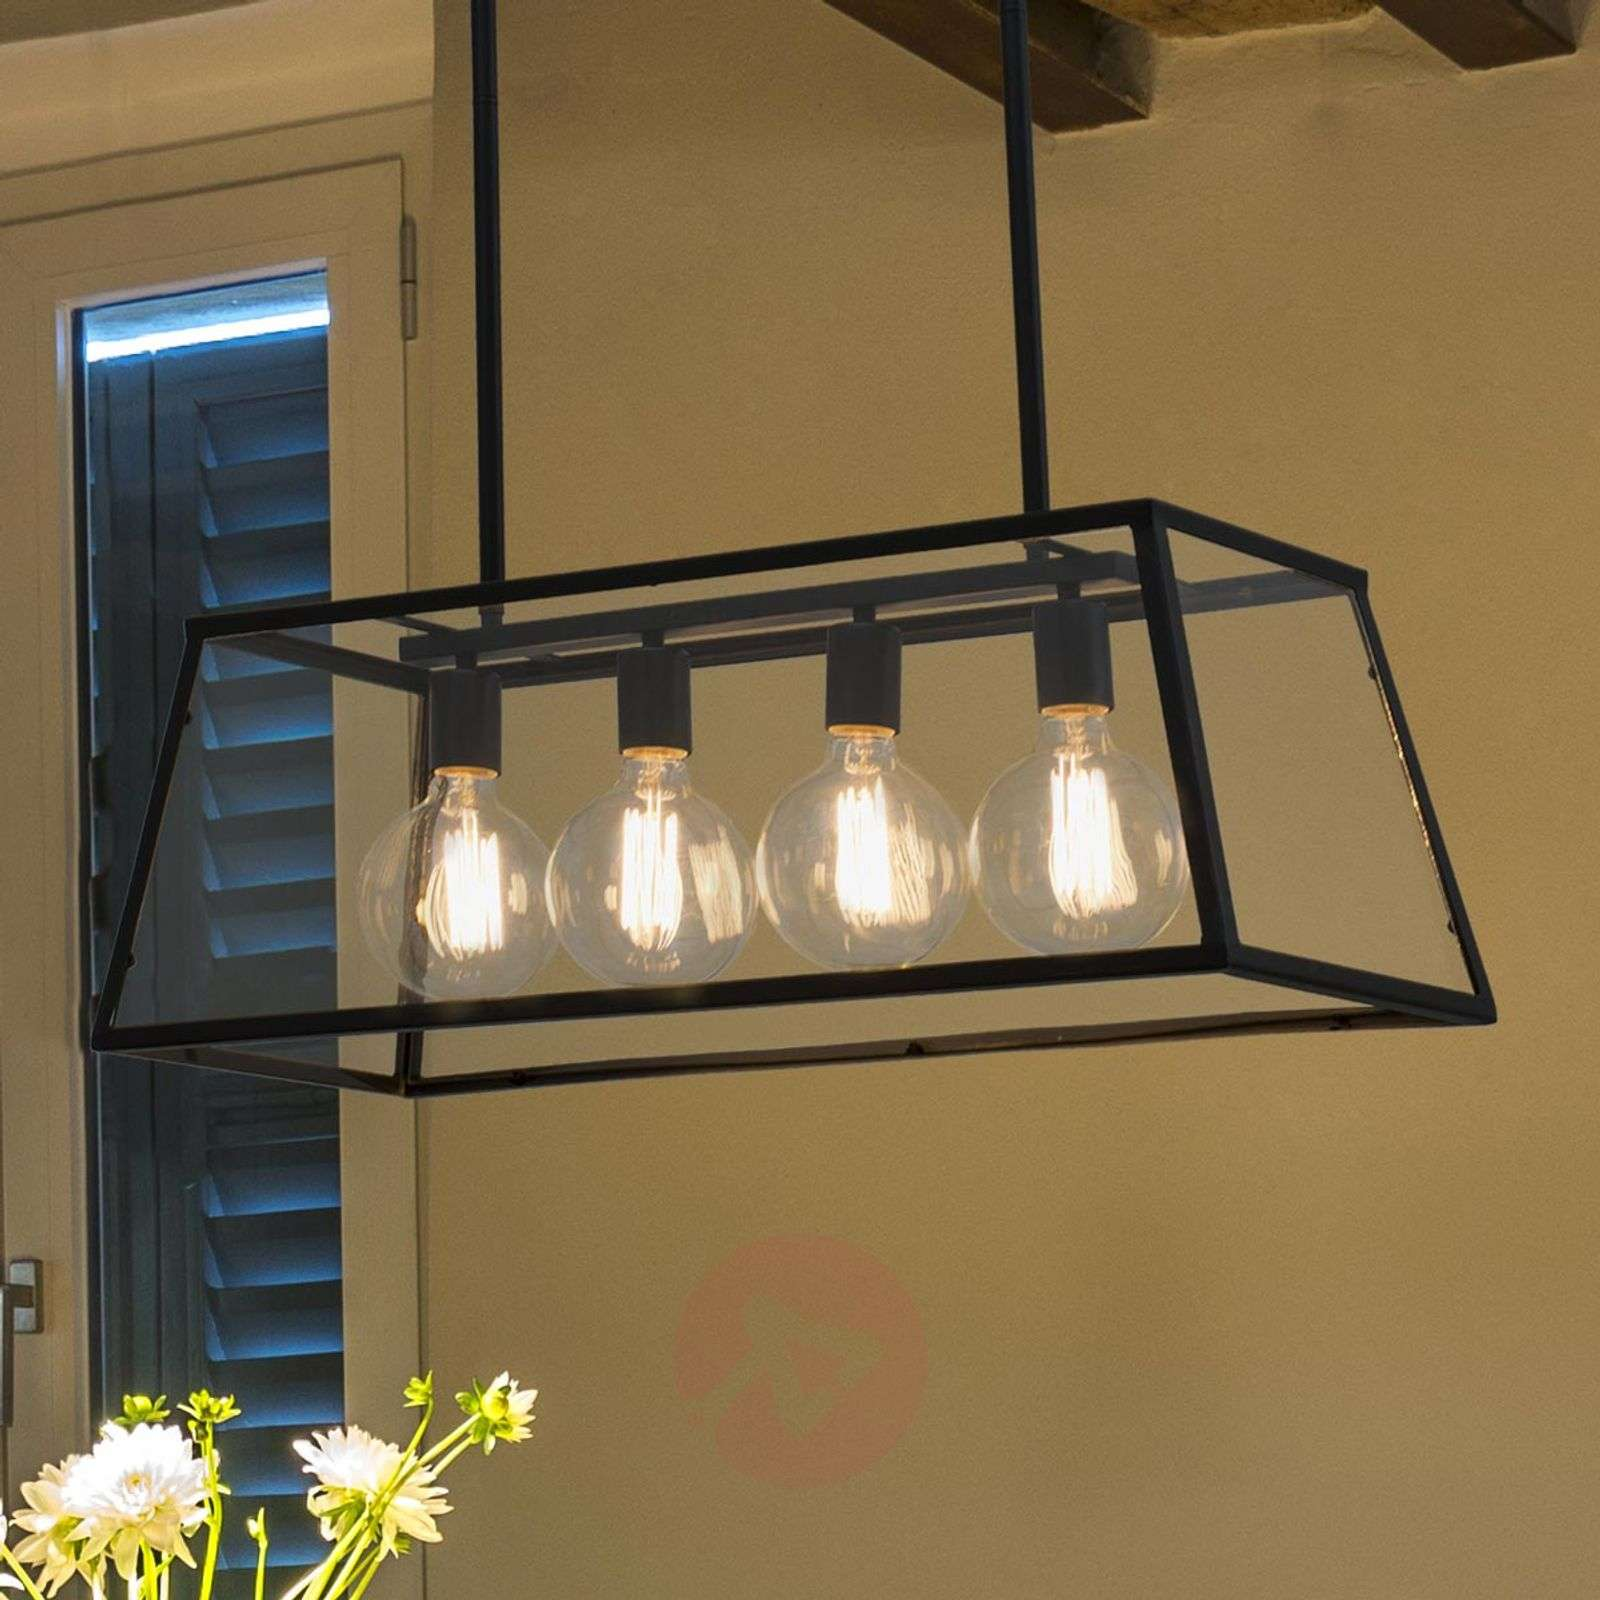 Industrial Look Lighting With Fourbulb Rose Hanging Lamp In Industrial Look350719301 Look Lightsie